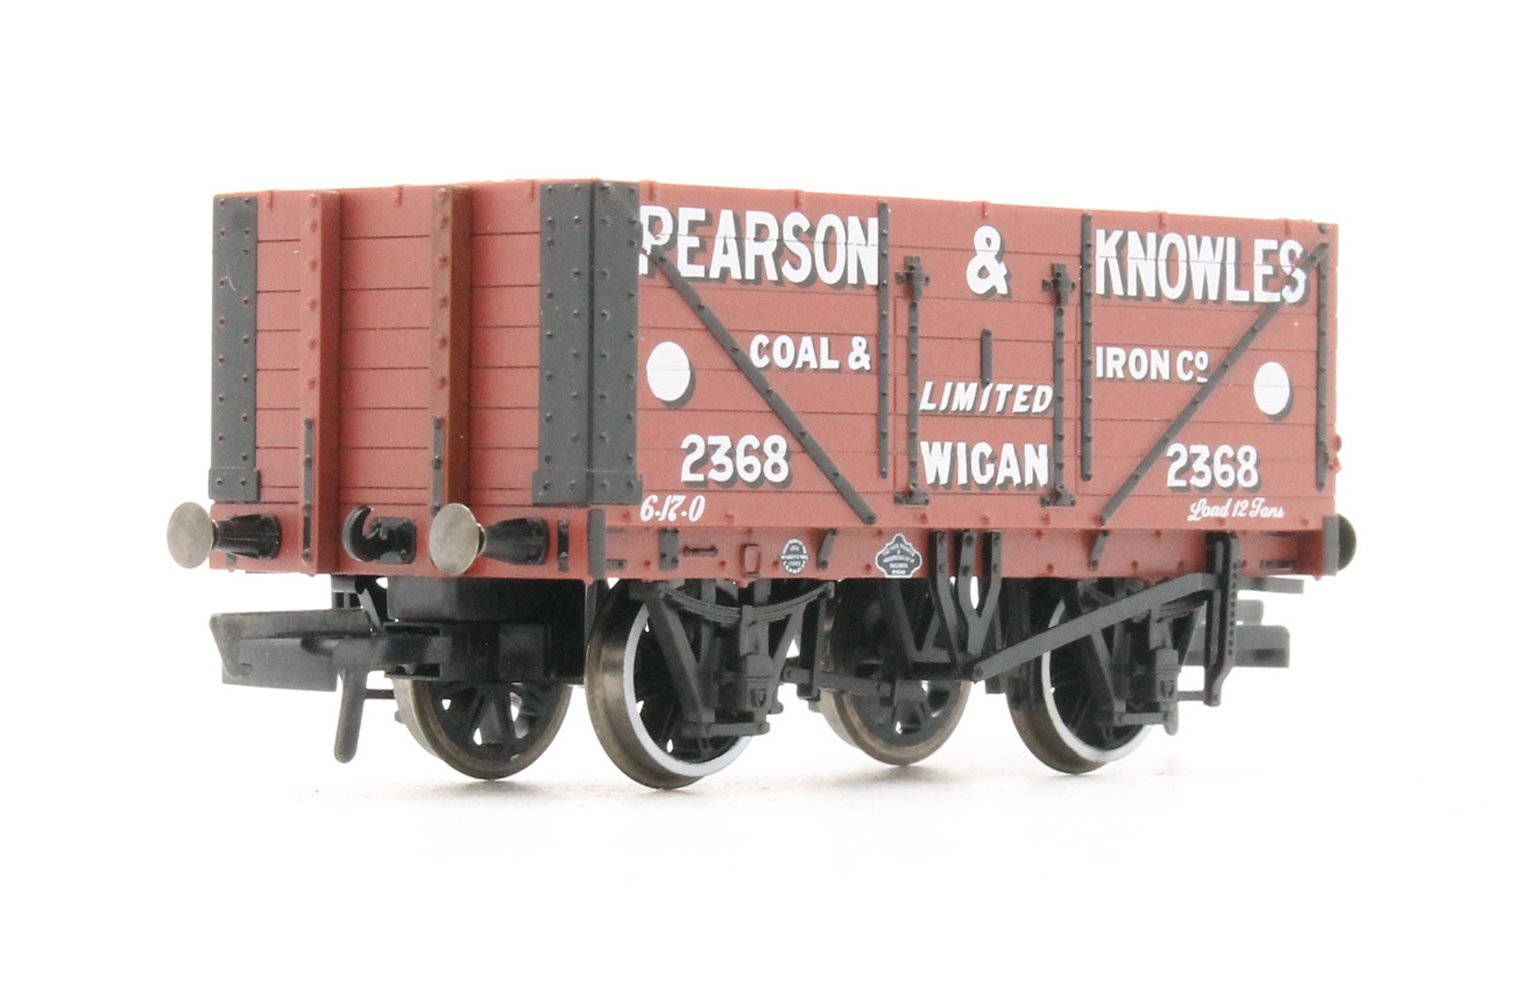 7 Plank Mineral Wagon - Pearson & Knowles